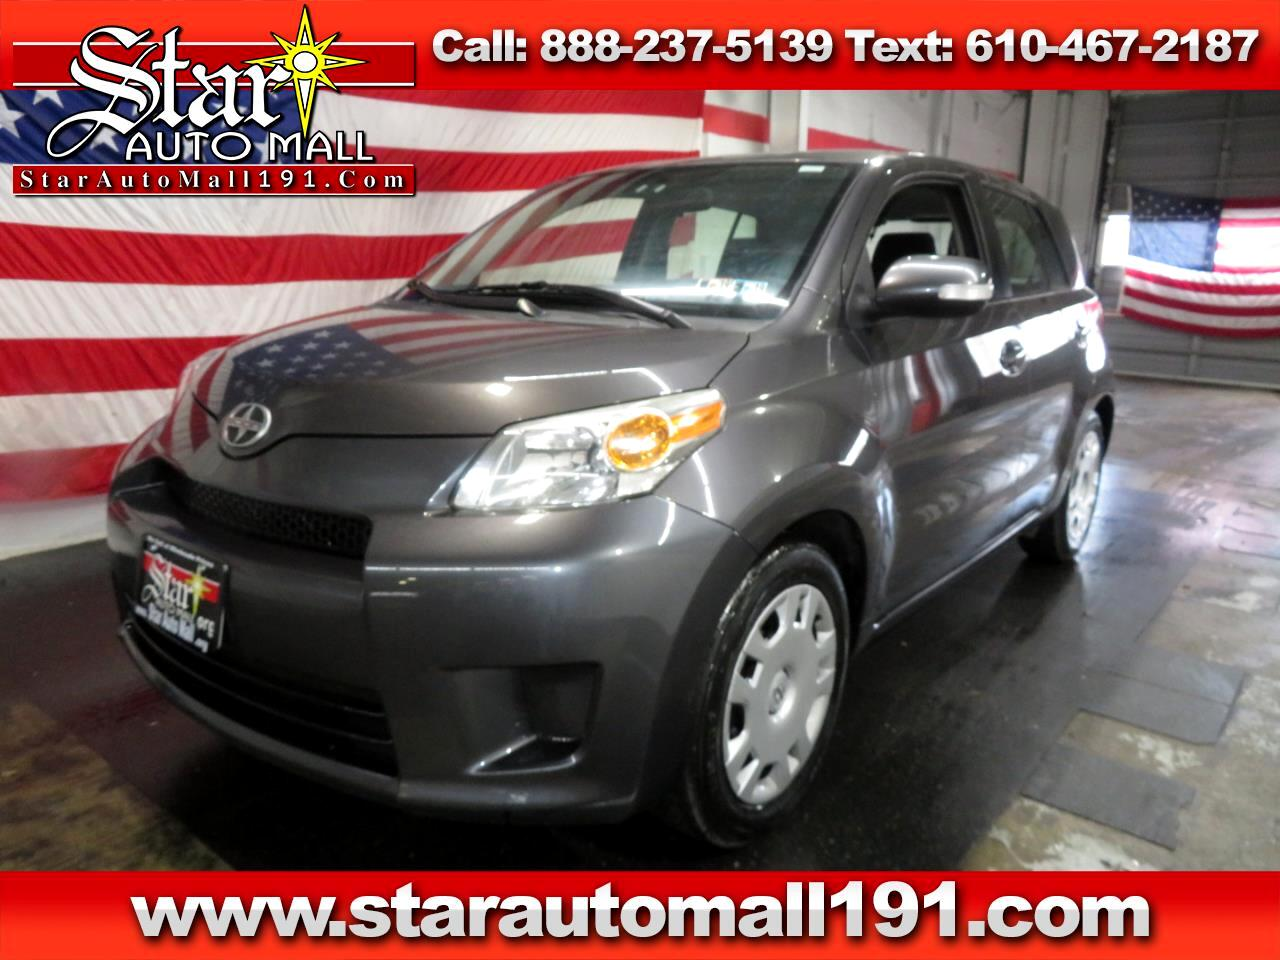 2011 Scion xD 5dr HB Auto (Natl)